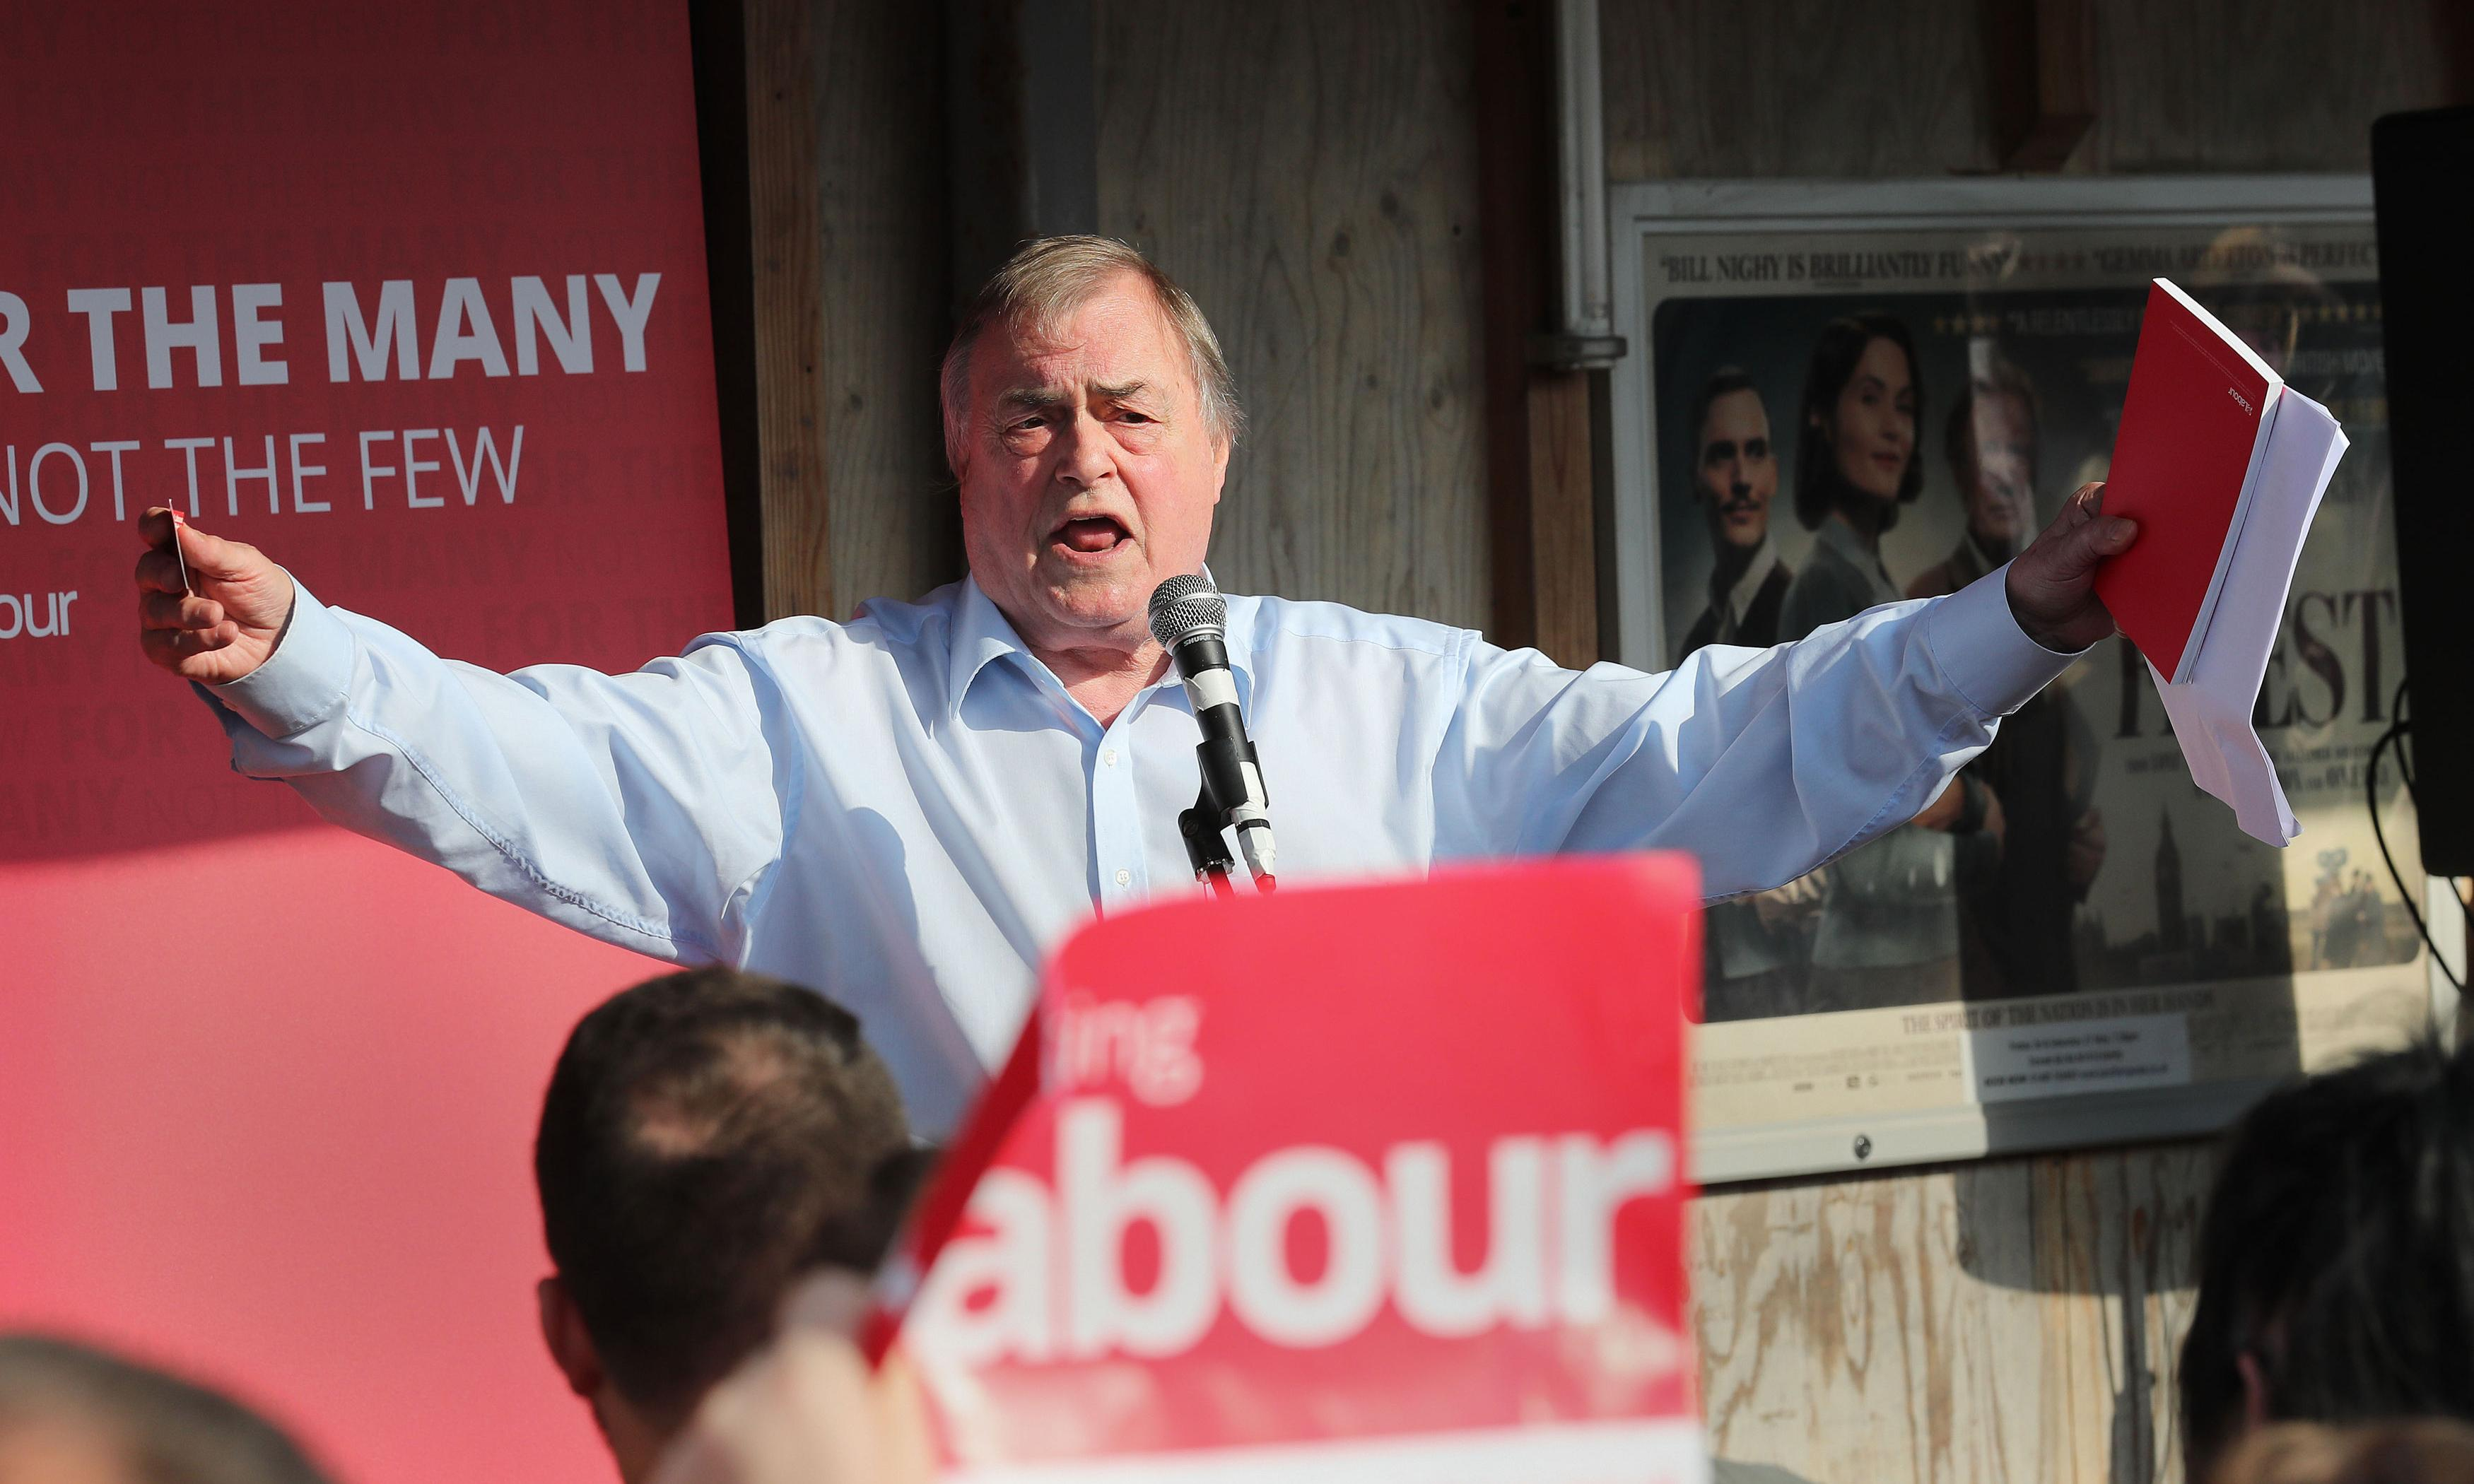 John Prescott admitted to hospital after stroke